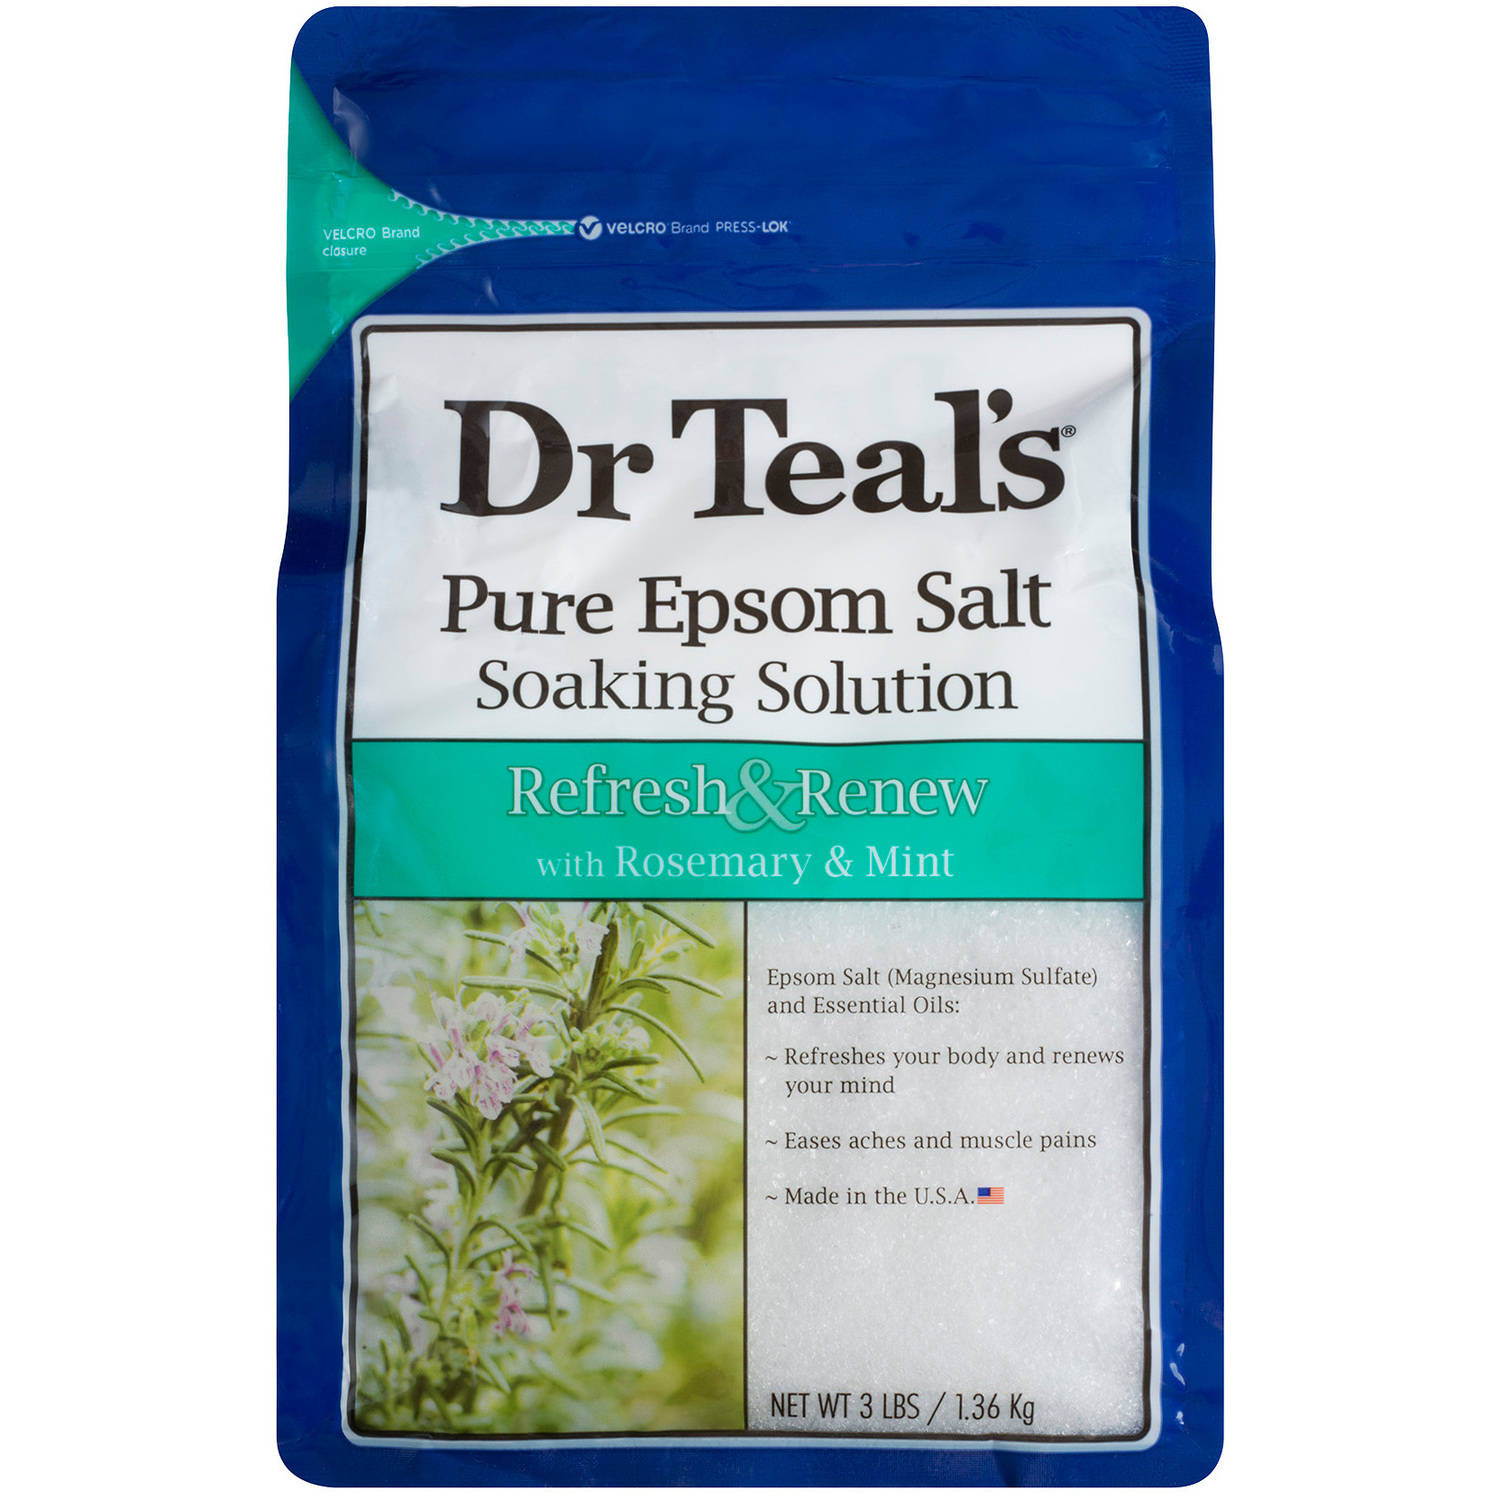 Dr. Teal's Refresh & Renew with Rosemary and Mint Epsom Salt Soaking Solution, 3 lbs